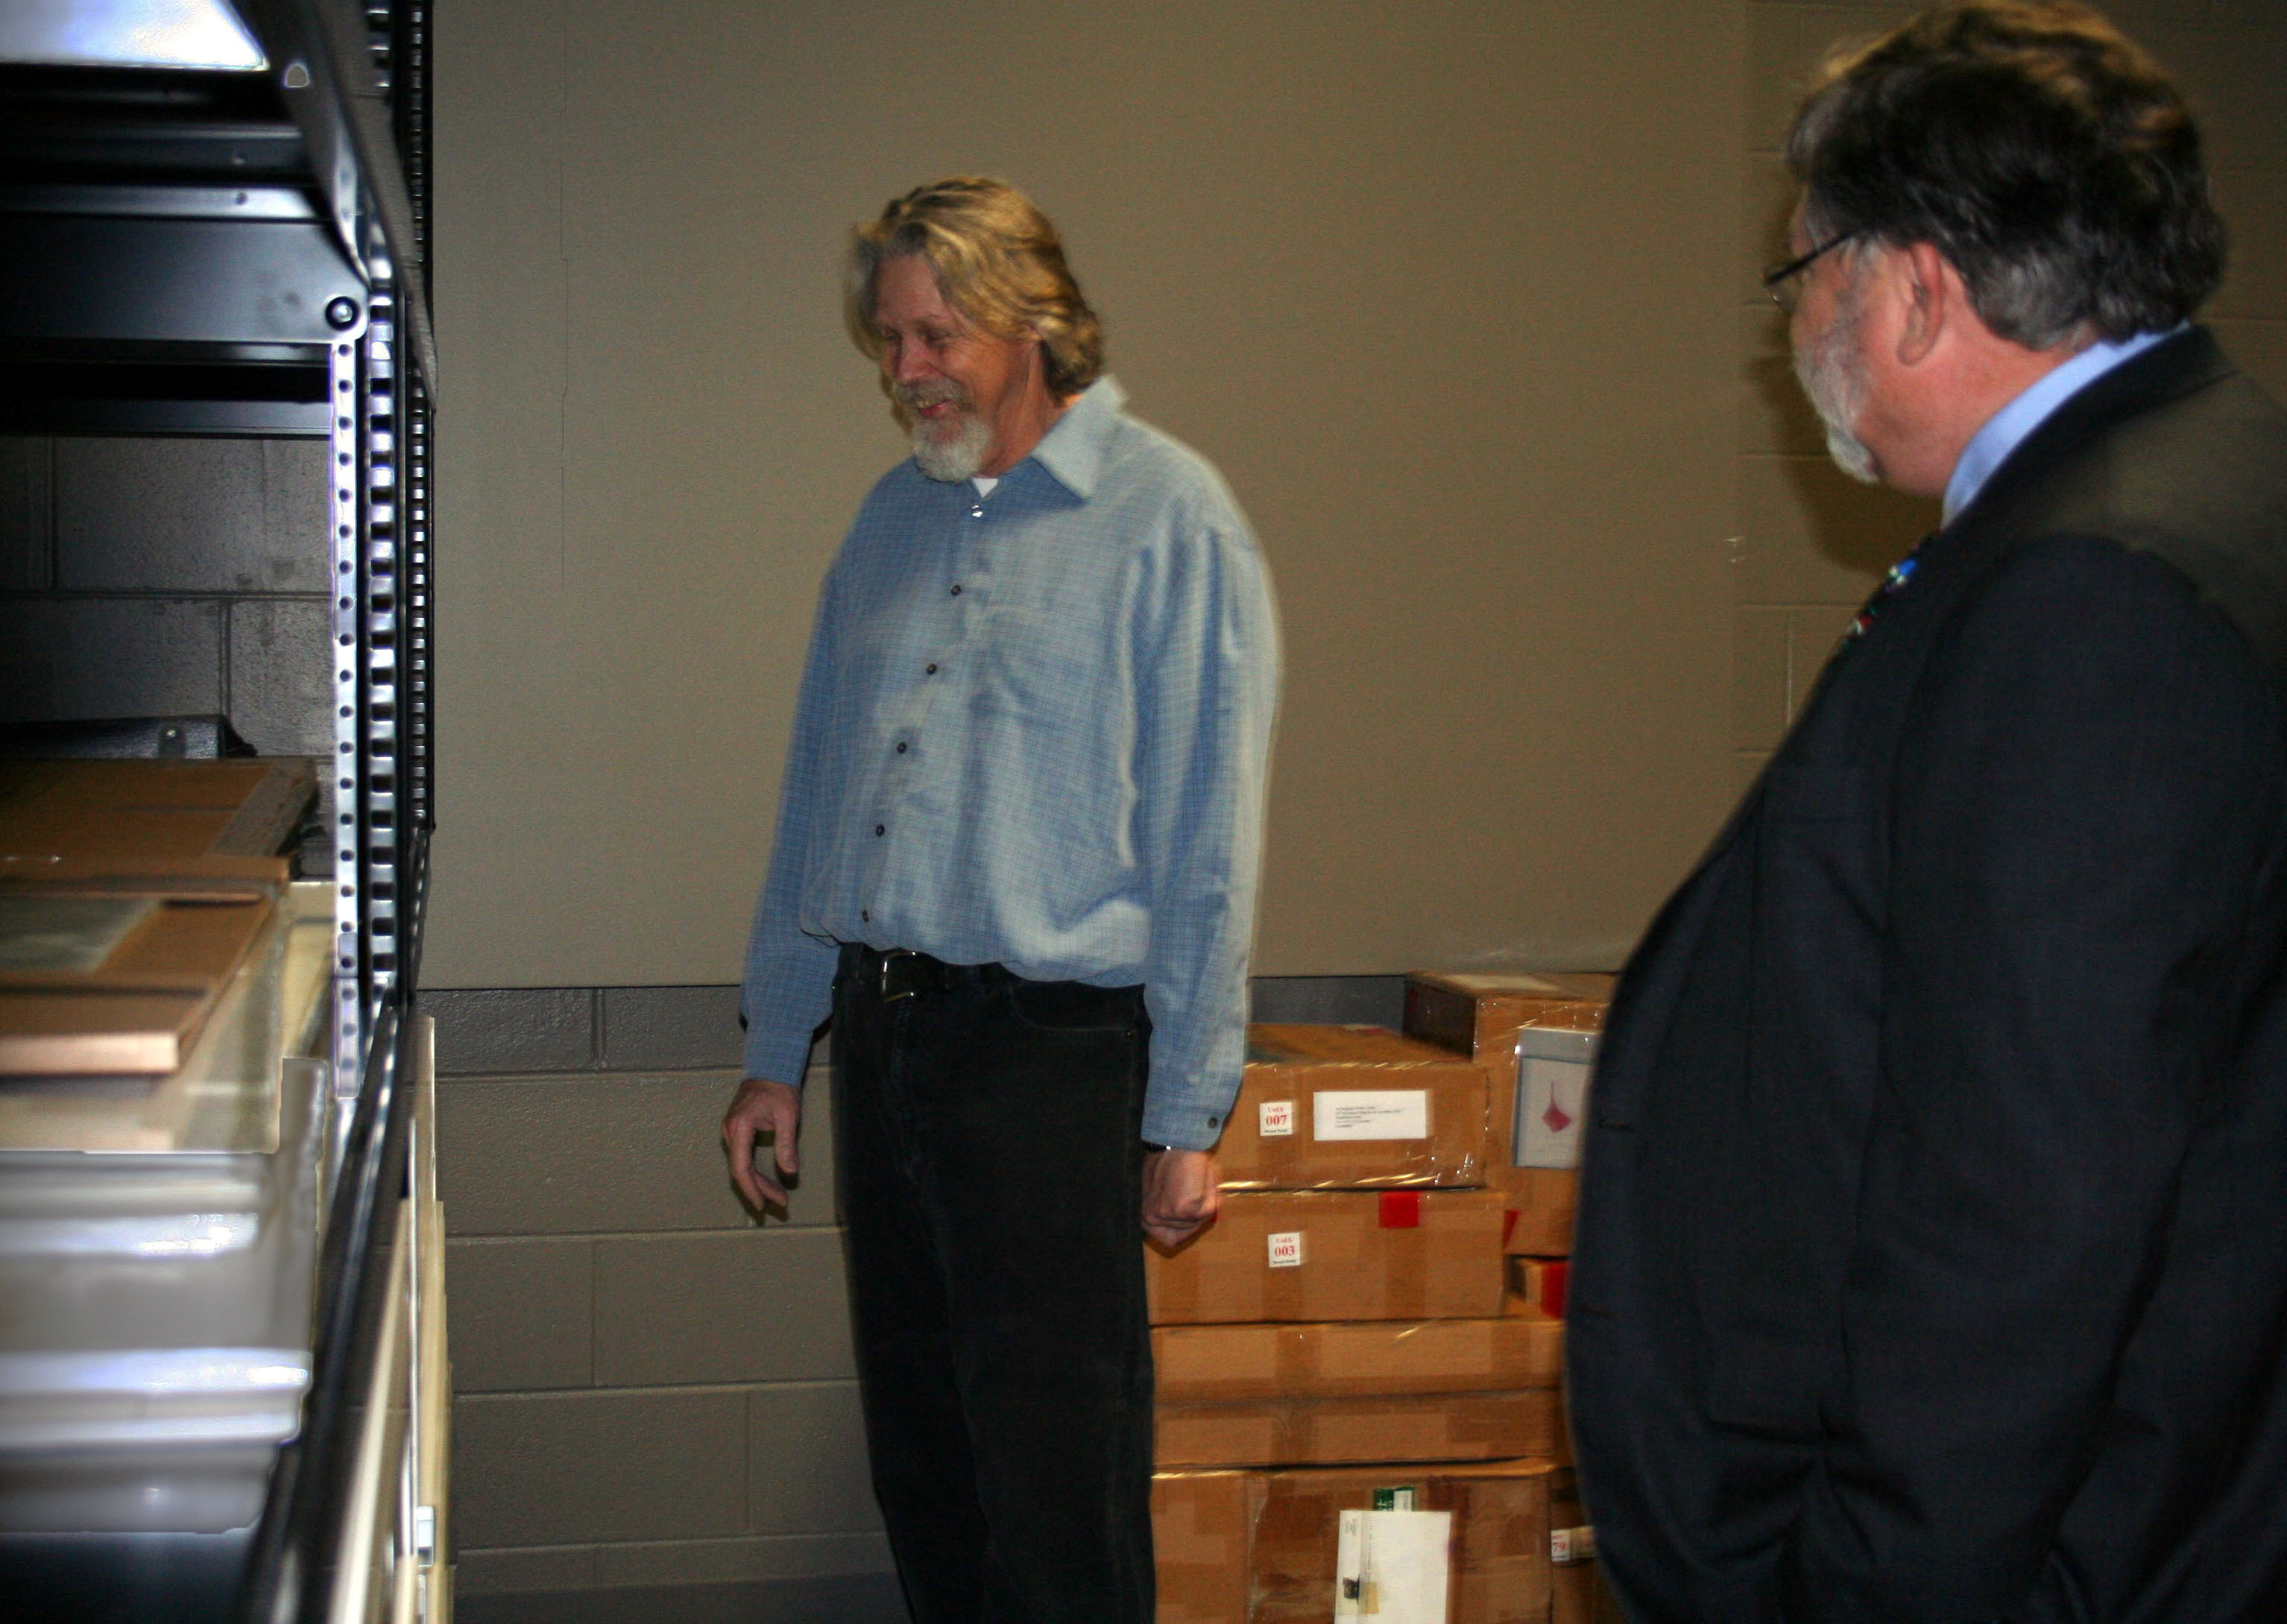 SMGA Director Bill Dooley gives Dean Olin a tour of the new space at the Dean's open house for the new curation space for the Sarah Moody Gallery of Art's Permanent Collection at The University of Alabama.